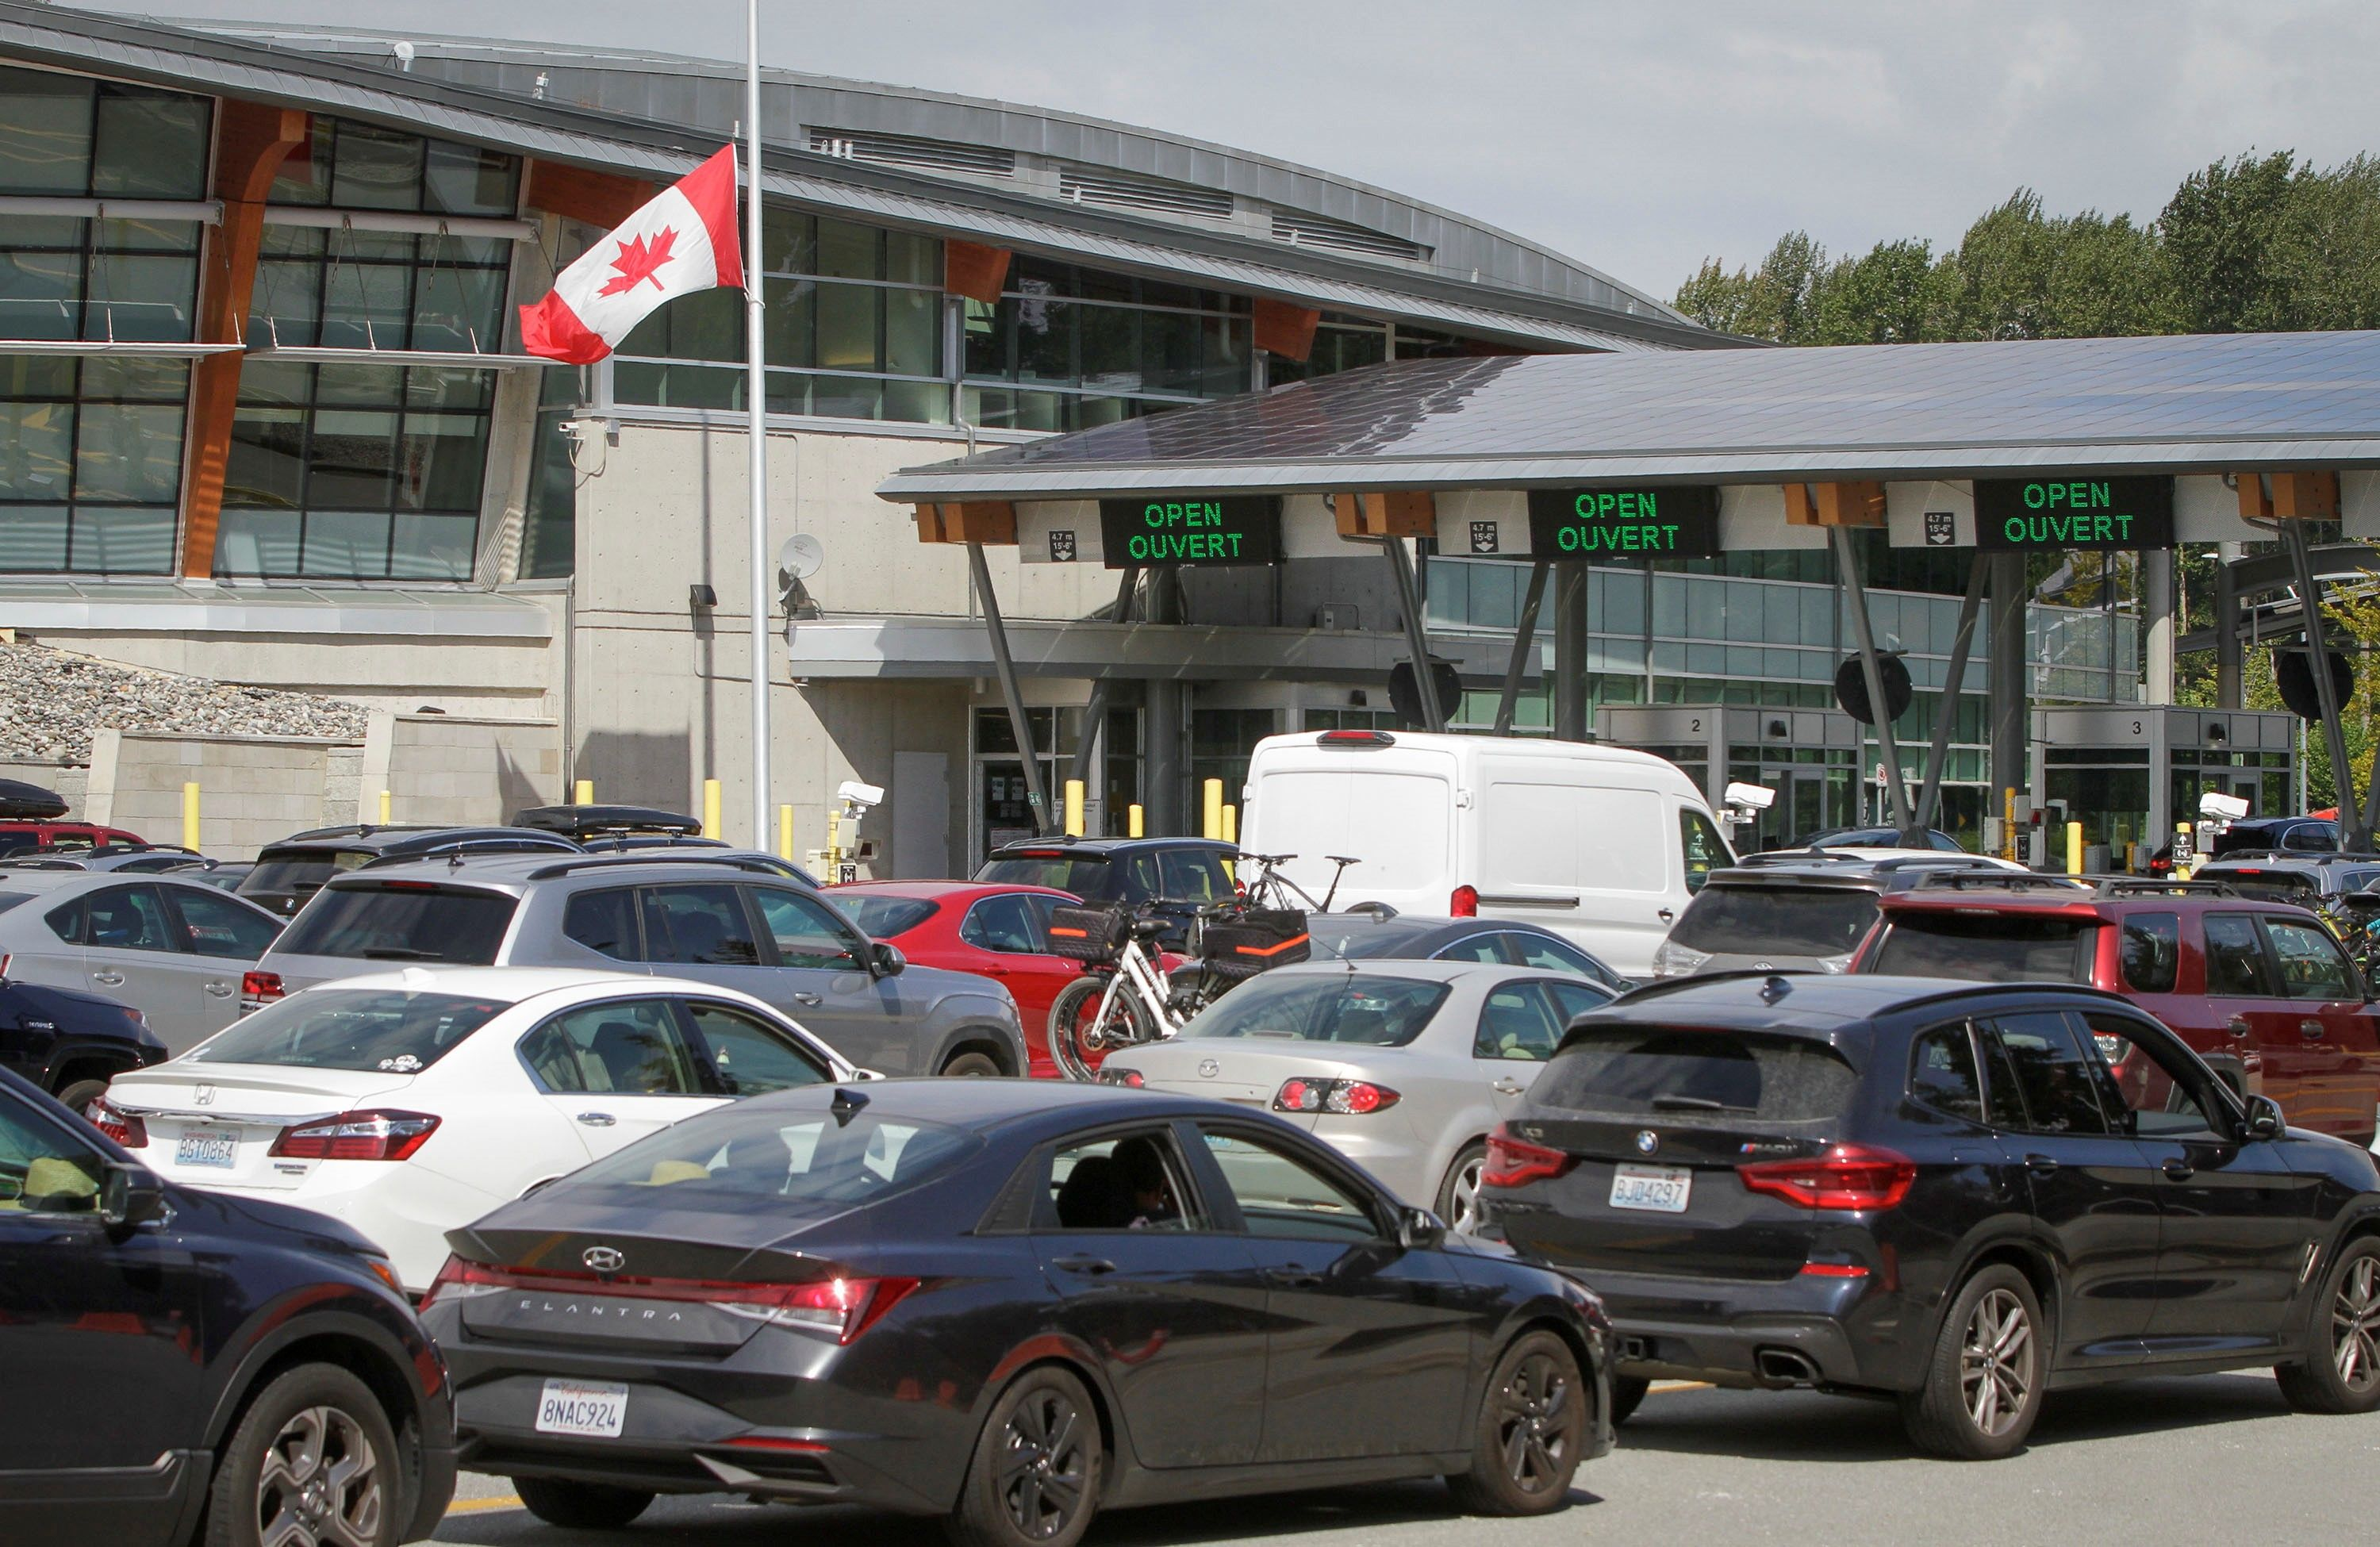 Canada Reopens Its Border to U.S. Travelers, and Cars Line Up